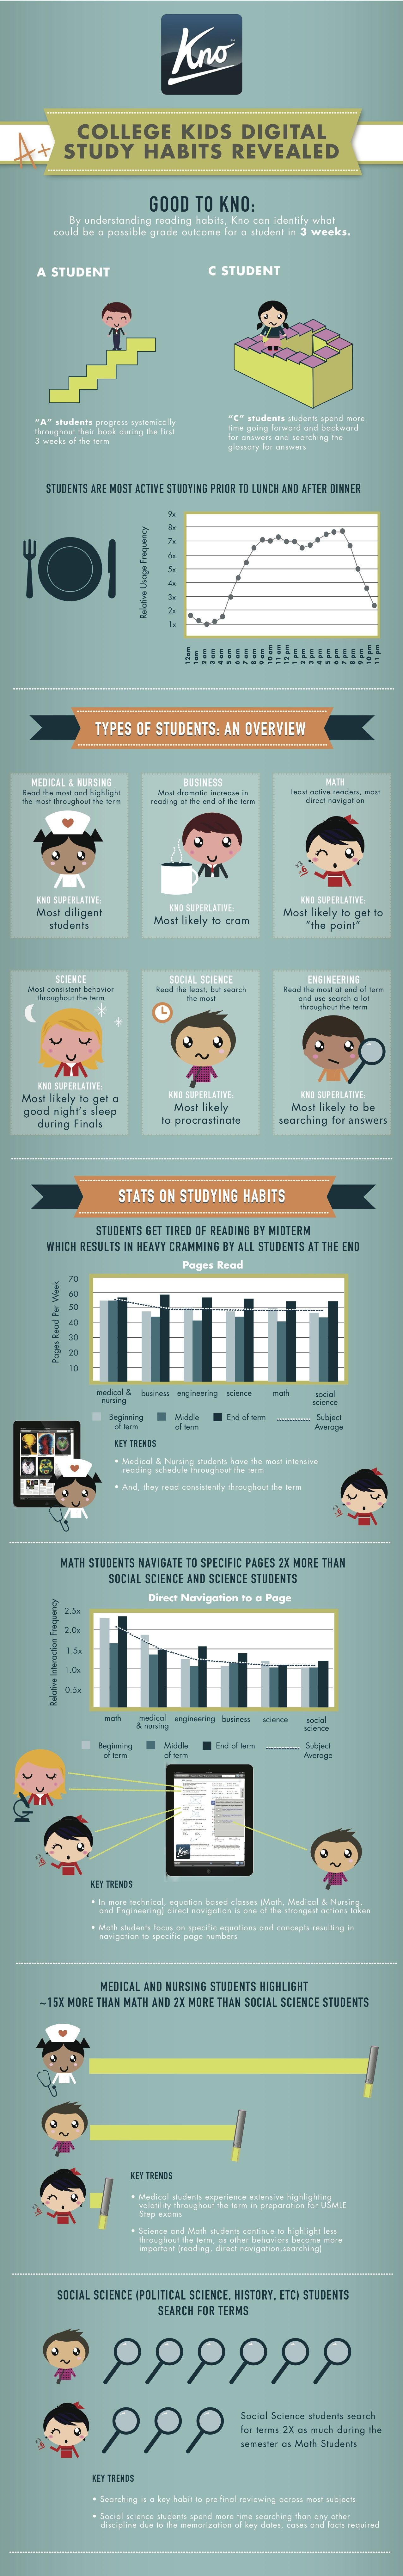 digital study habits of college students medical digital study habits of college students 07 11 12